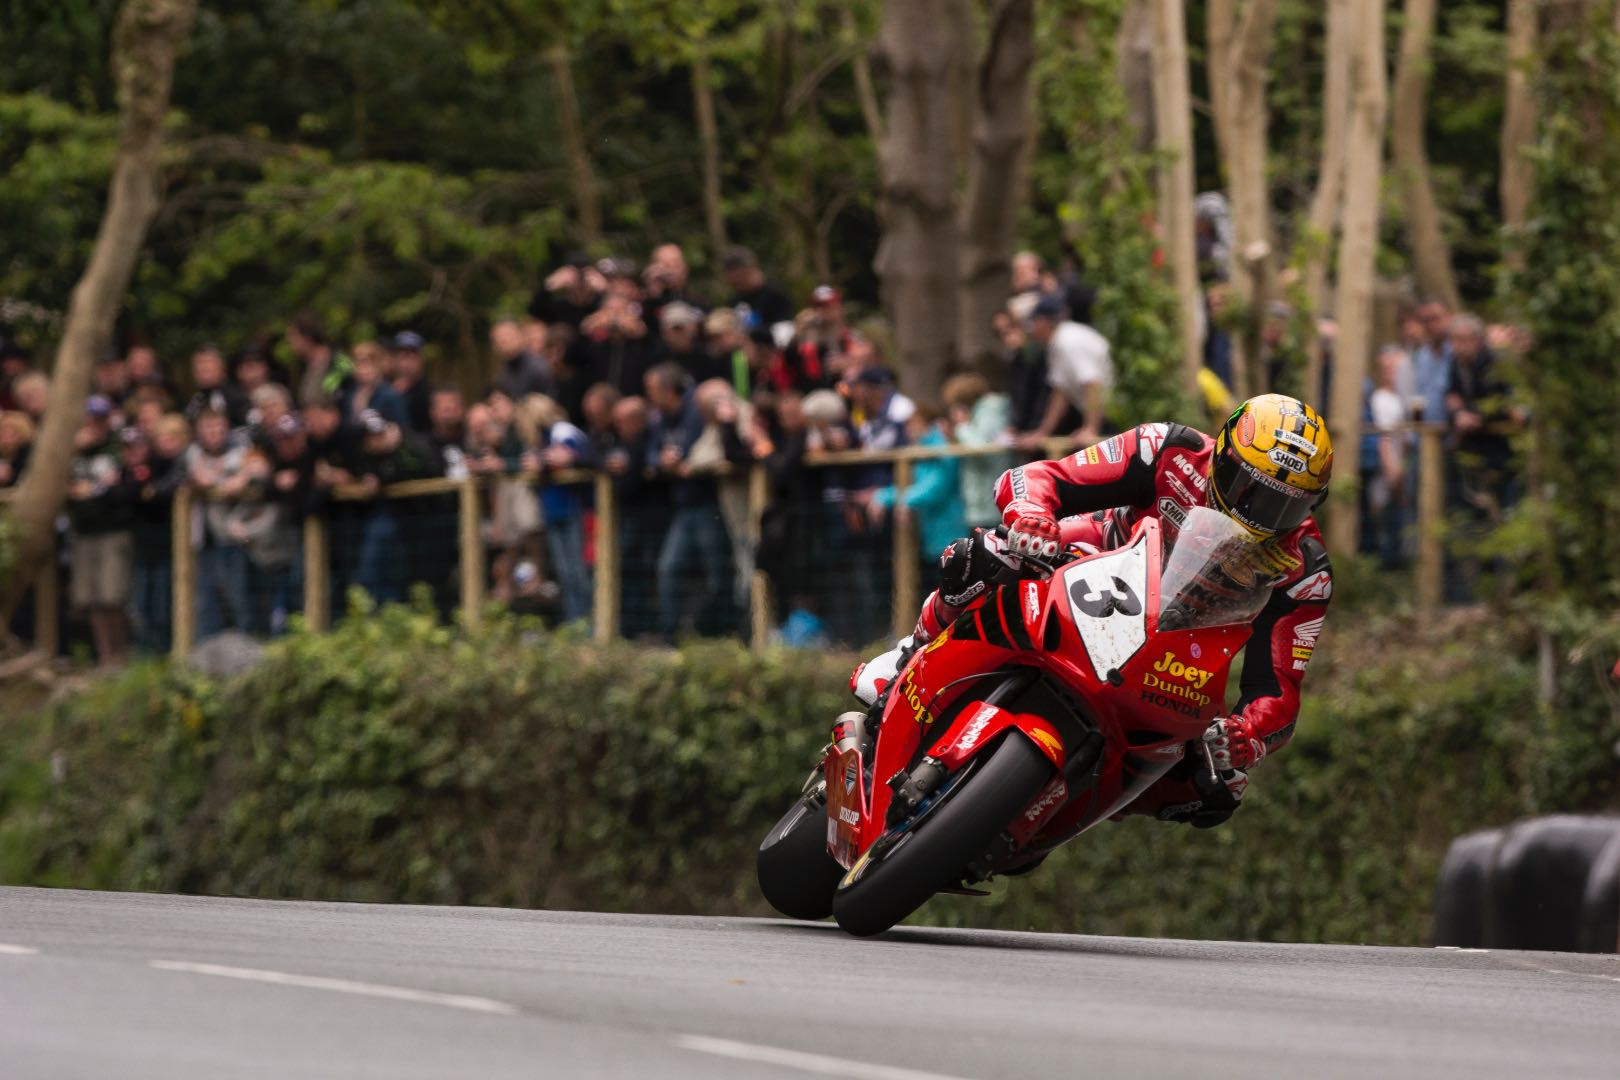 2020 isle of man tt canceled